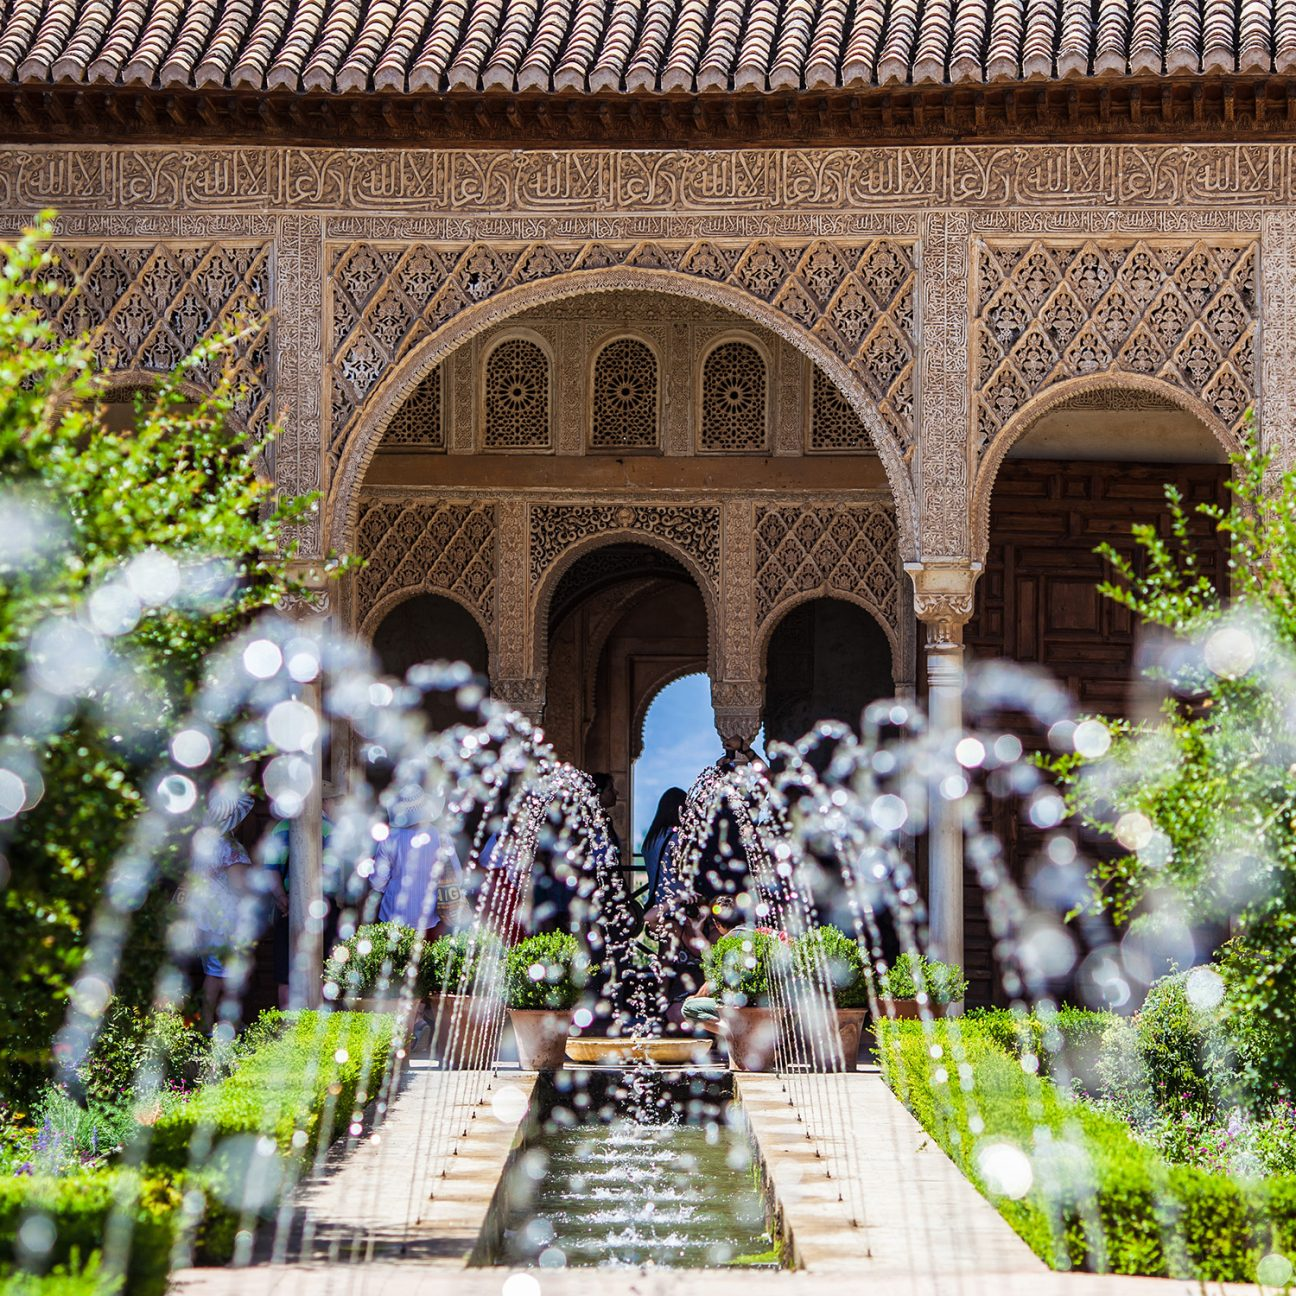 Gardens of the Generalife at Alhambra